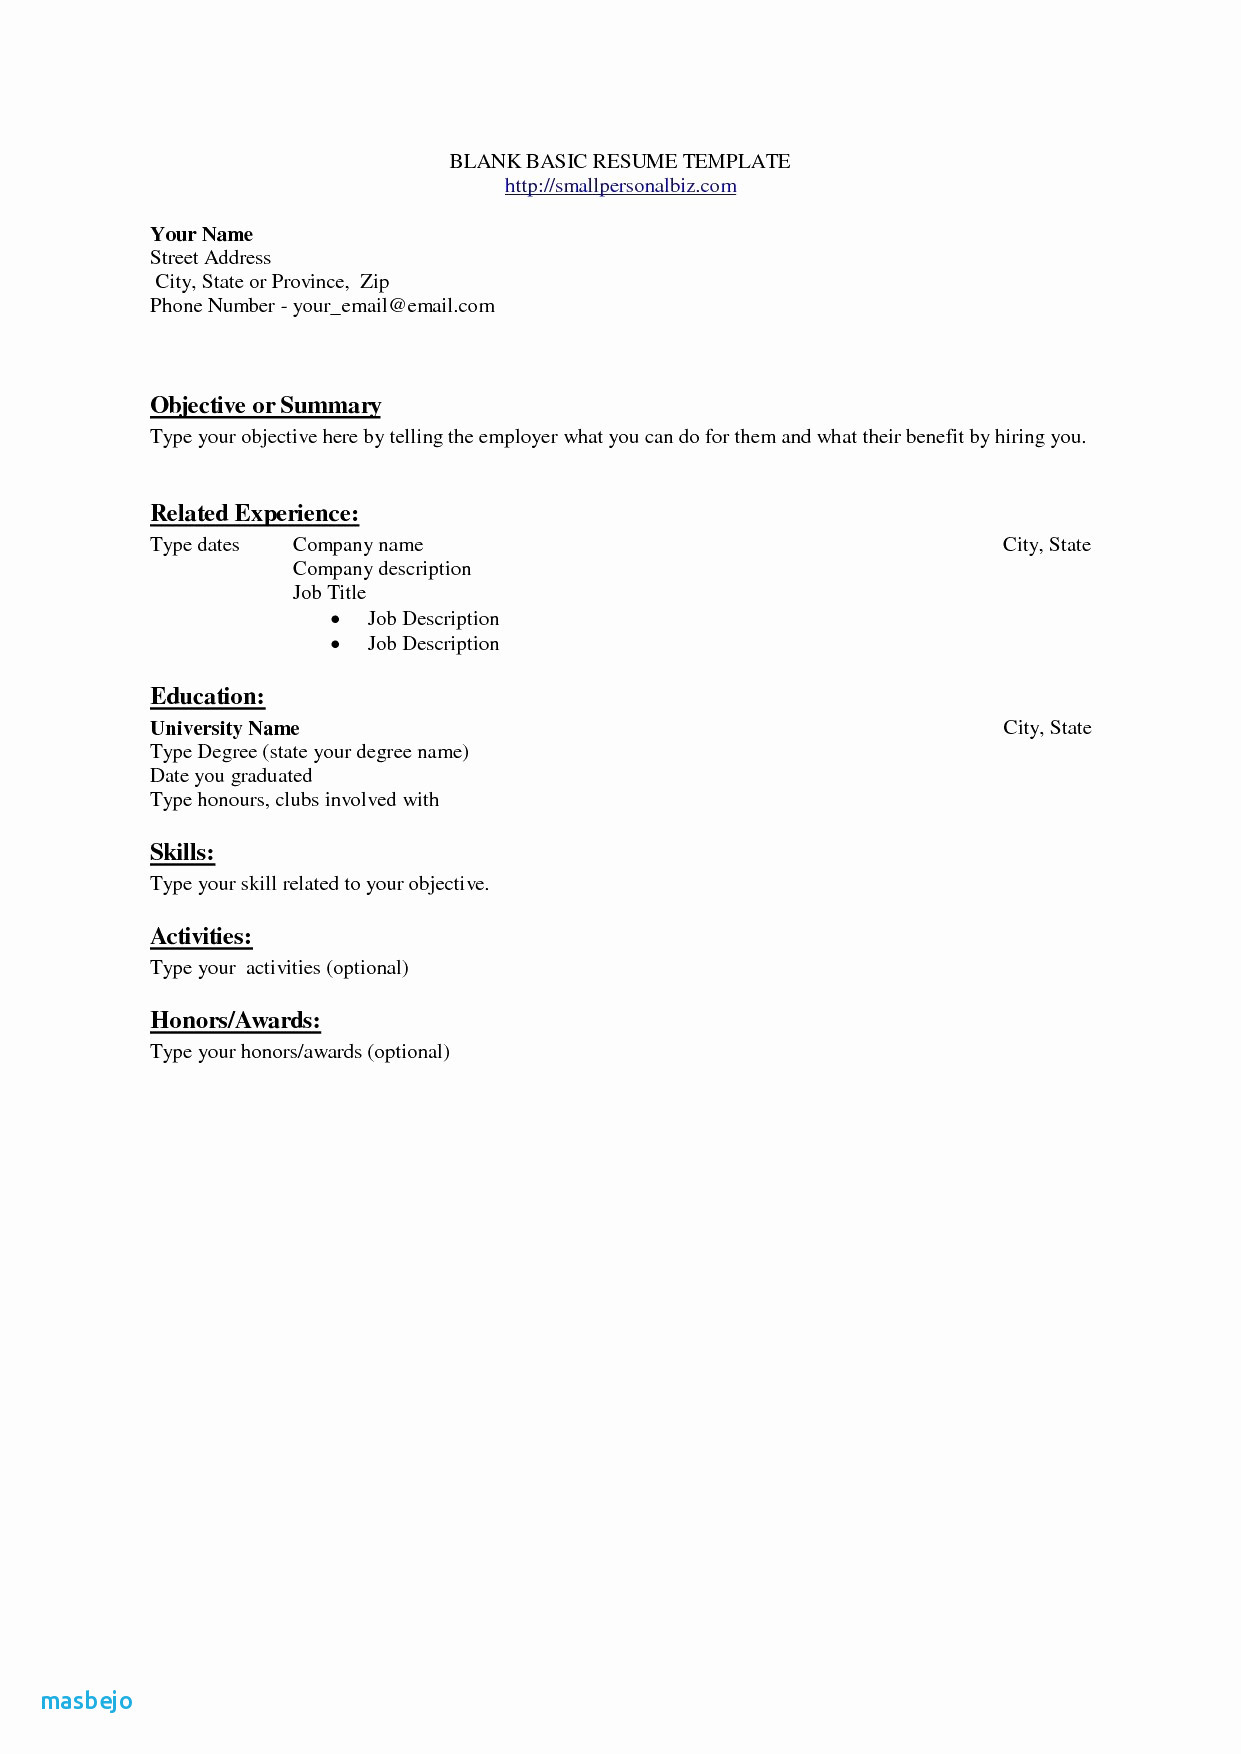 Experienced Rn Resume - Linkedin Resume Unique Experienced Rn Resume Fresh Nurse Resume 0d